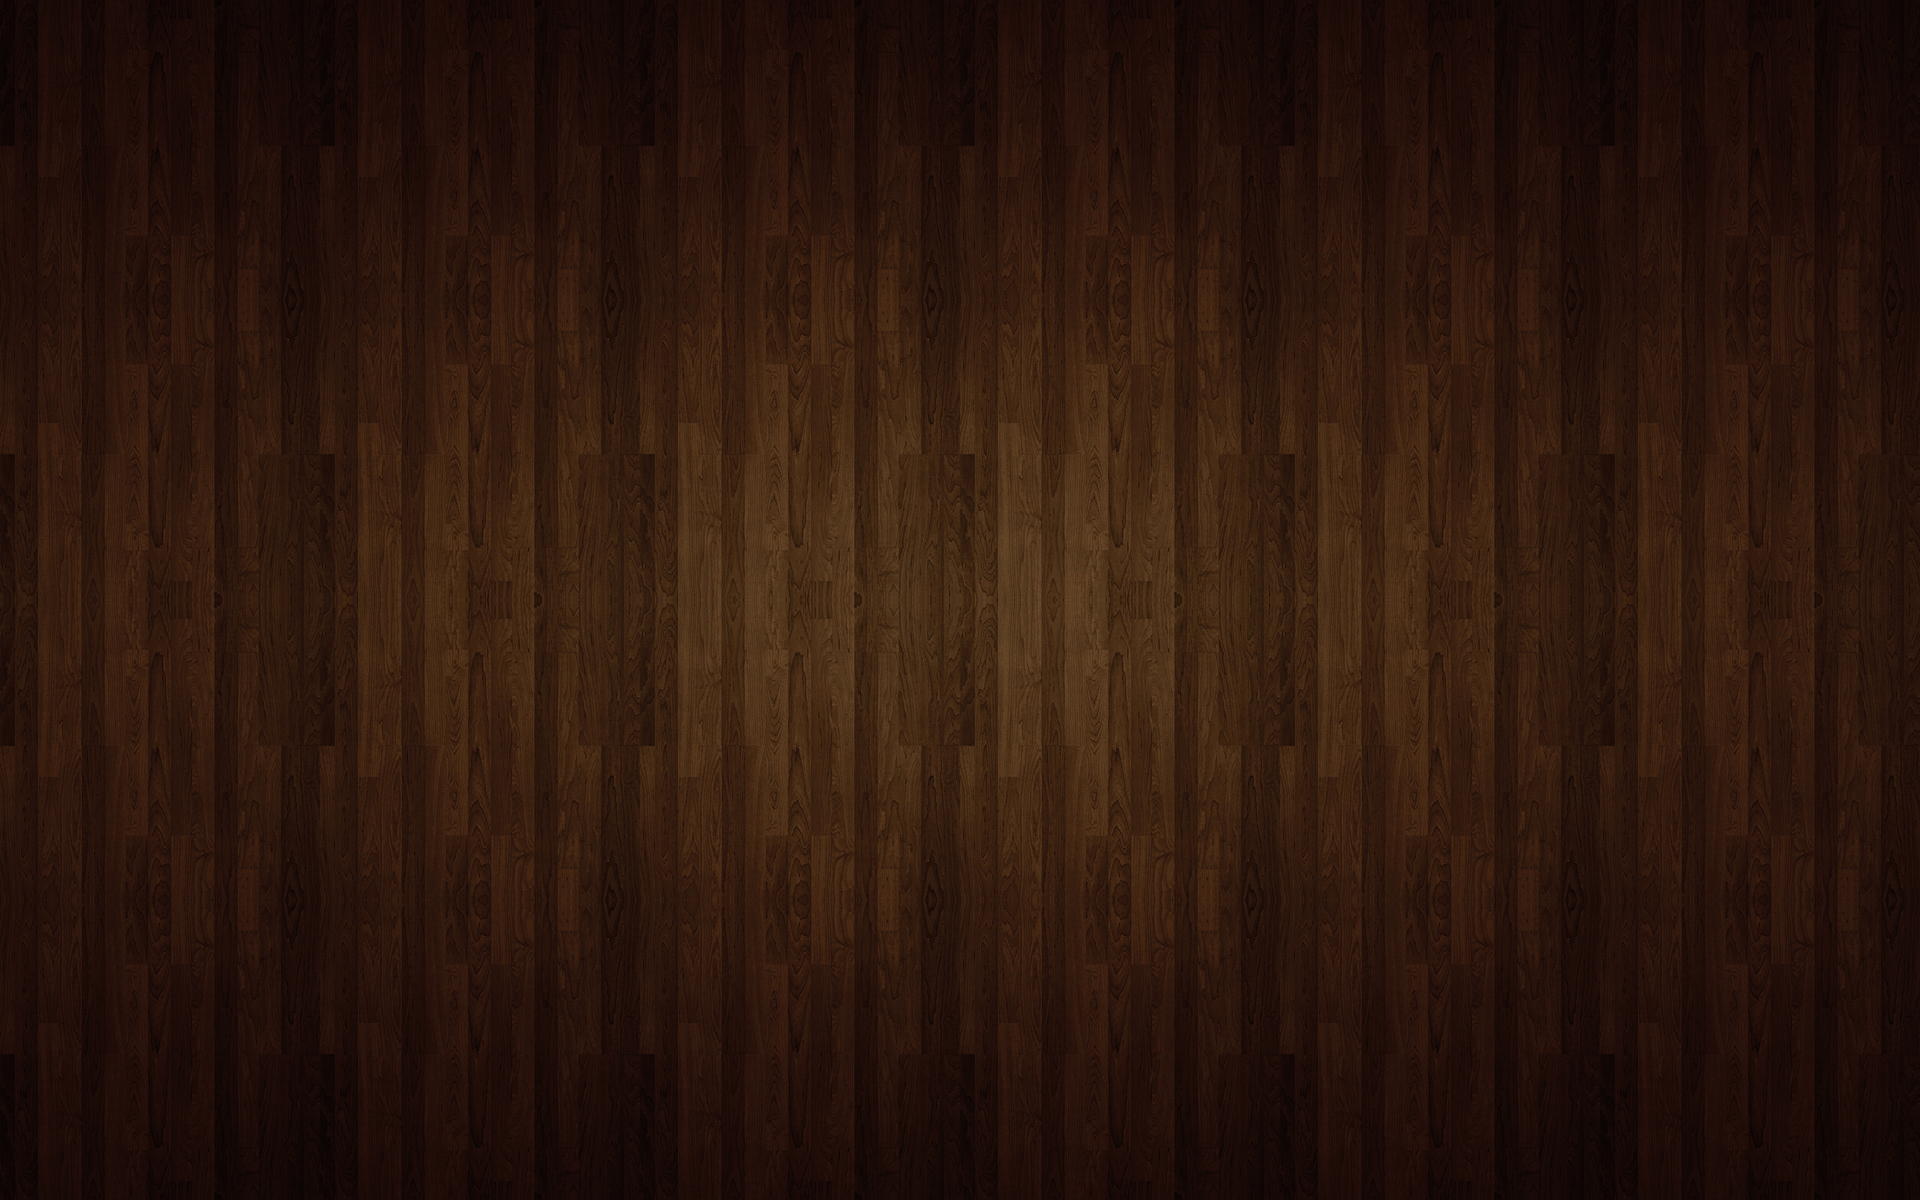 Wood texture wallpaper   34723 1920x1200